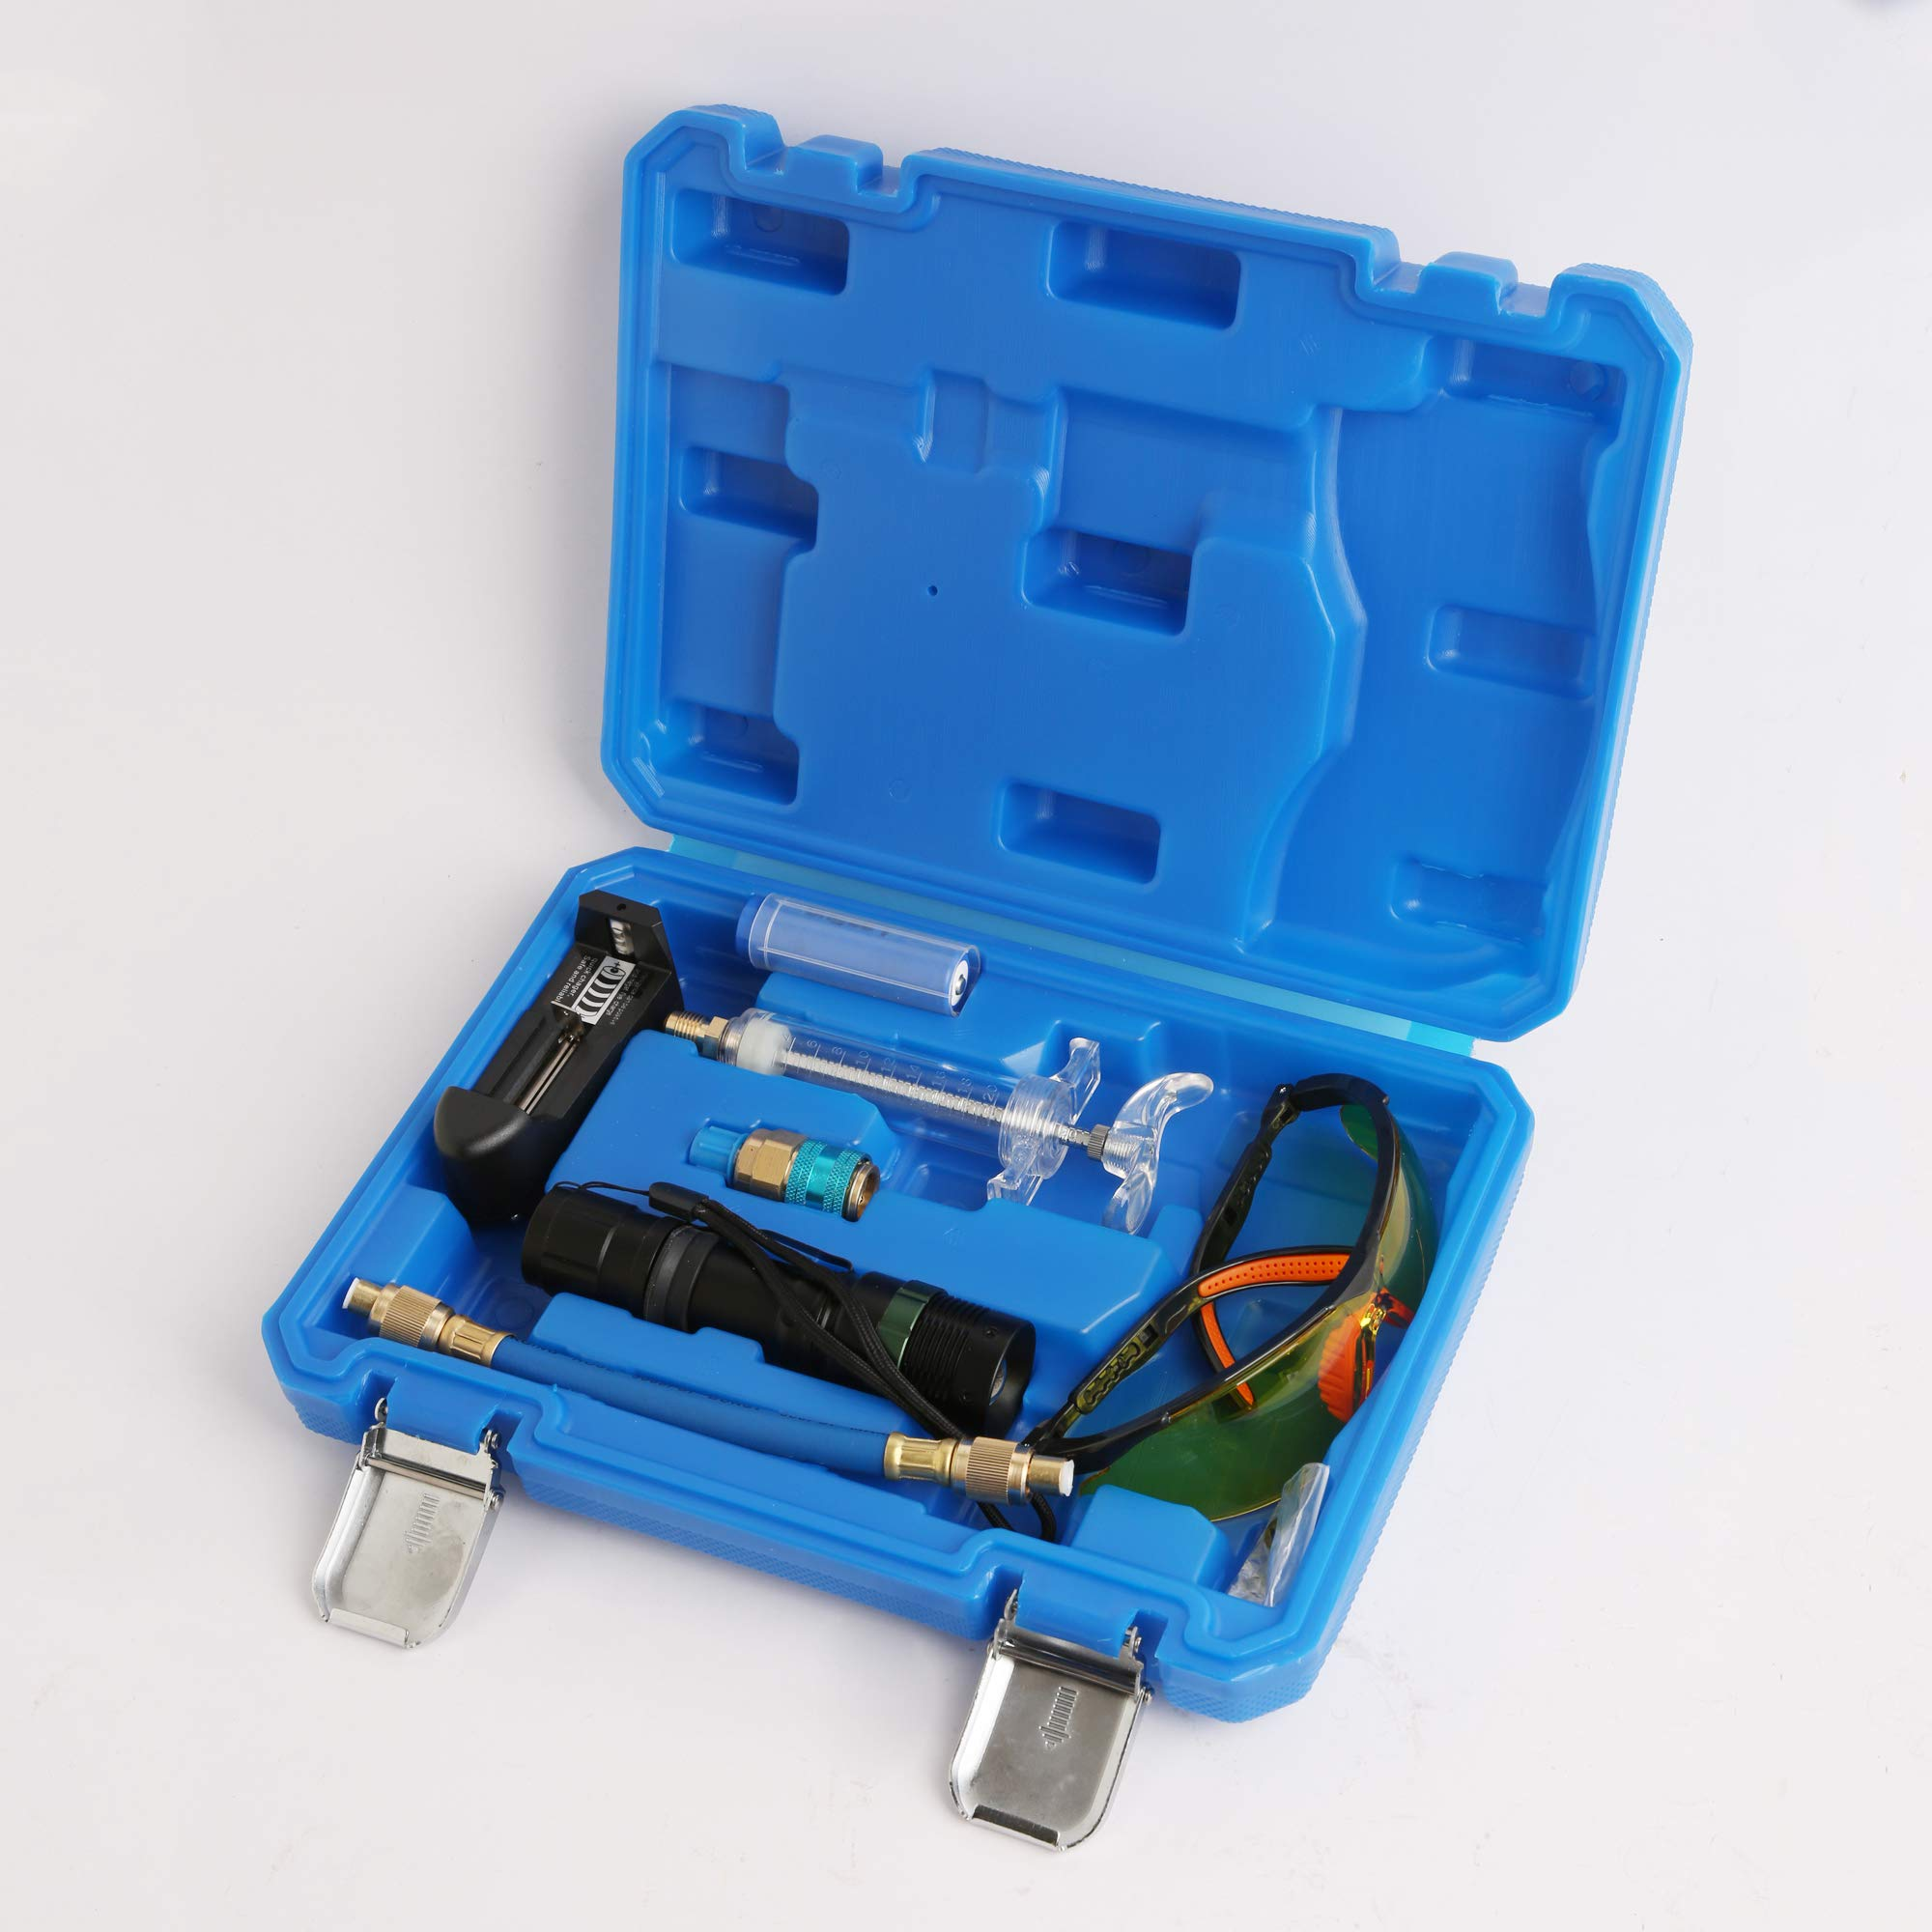 WINTOOLS 3W UV Leak Detector Led Lamp Set Rechargeable Battery Air Con Engine Gearbox Set by WINTOOLS (Image #2)